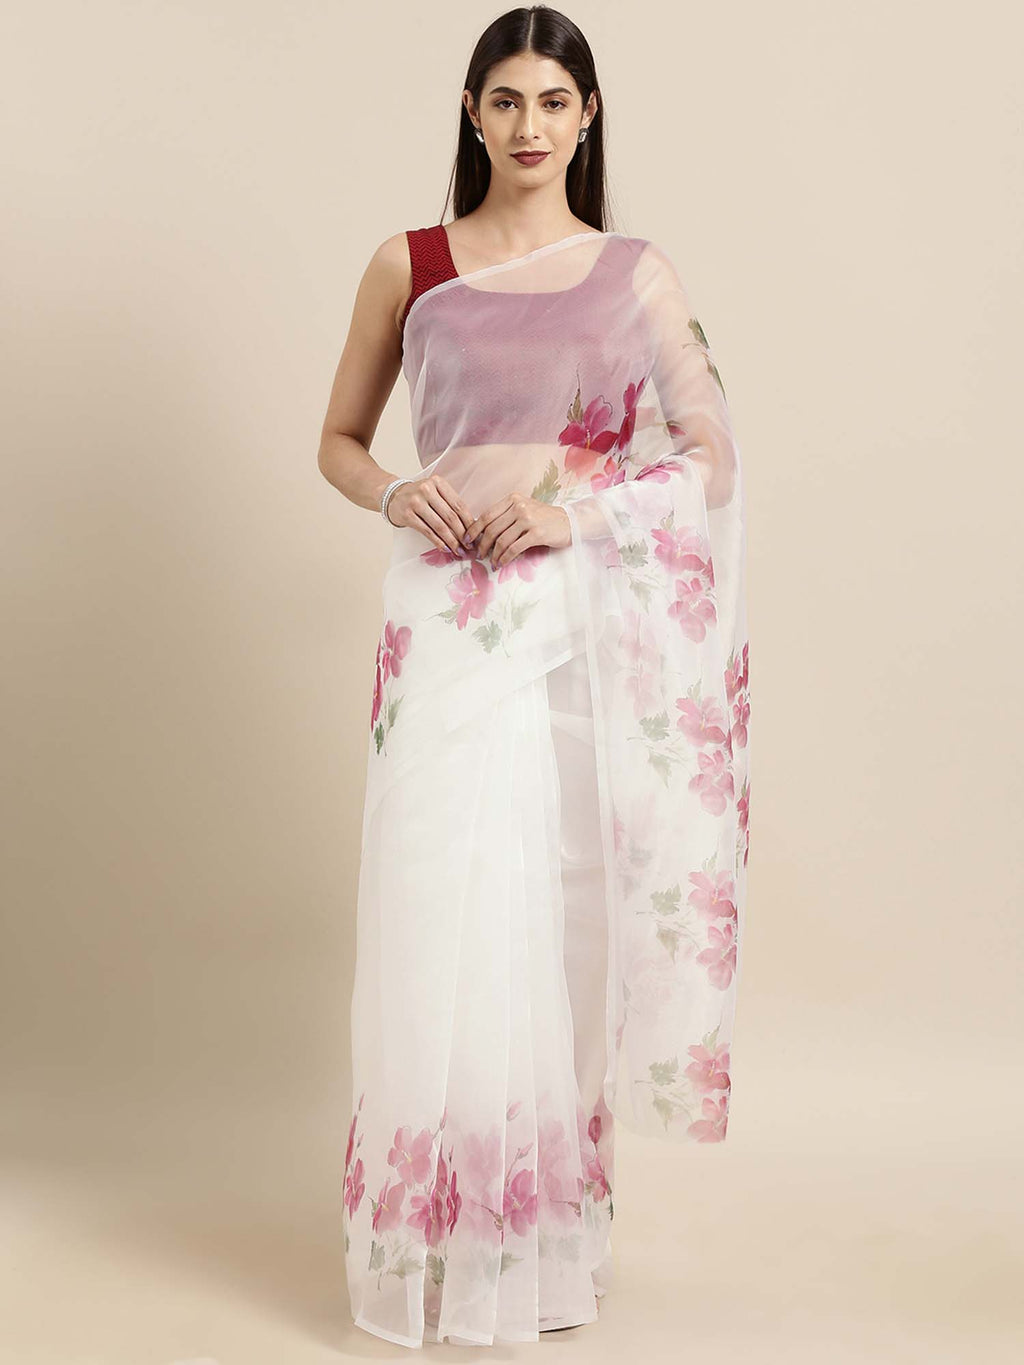 Off White & Multicolor Floral Digital Print Organza Saree with Poly Dupion Blouse - Riviera Closet